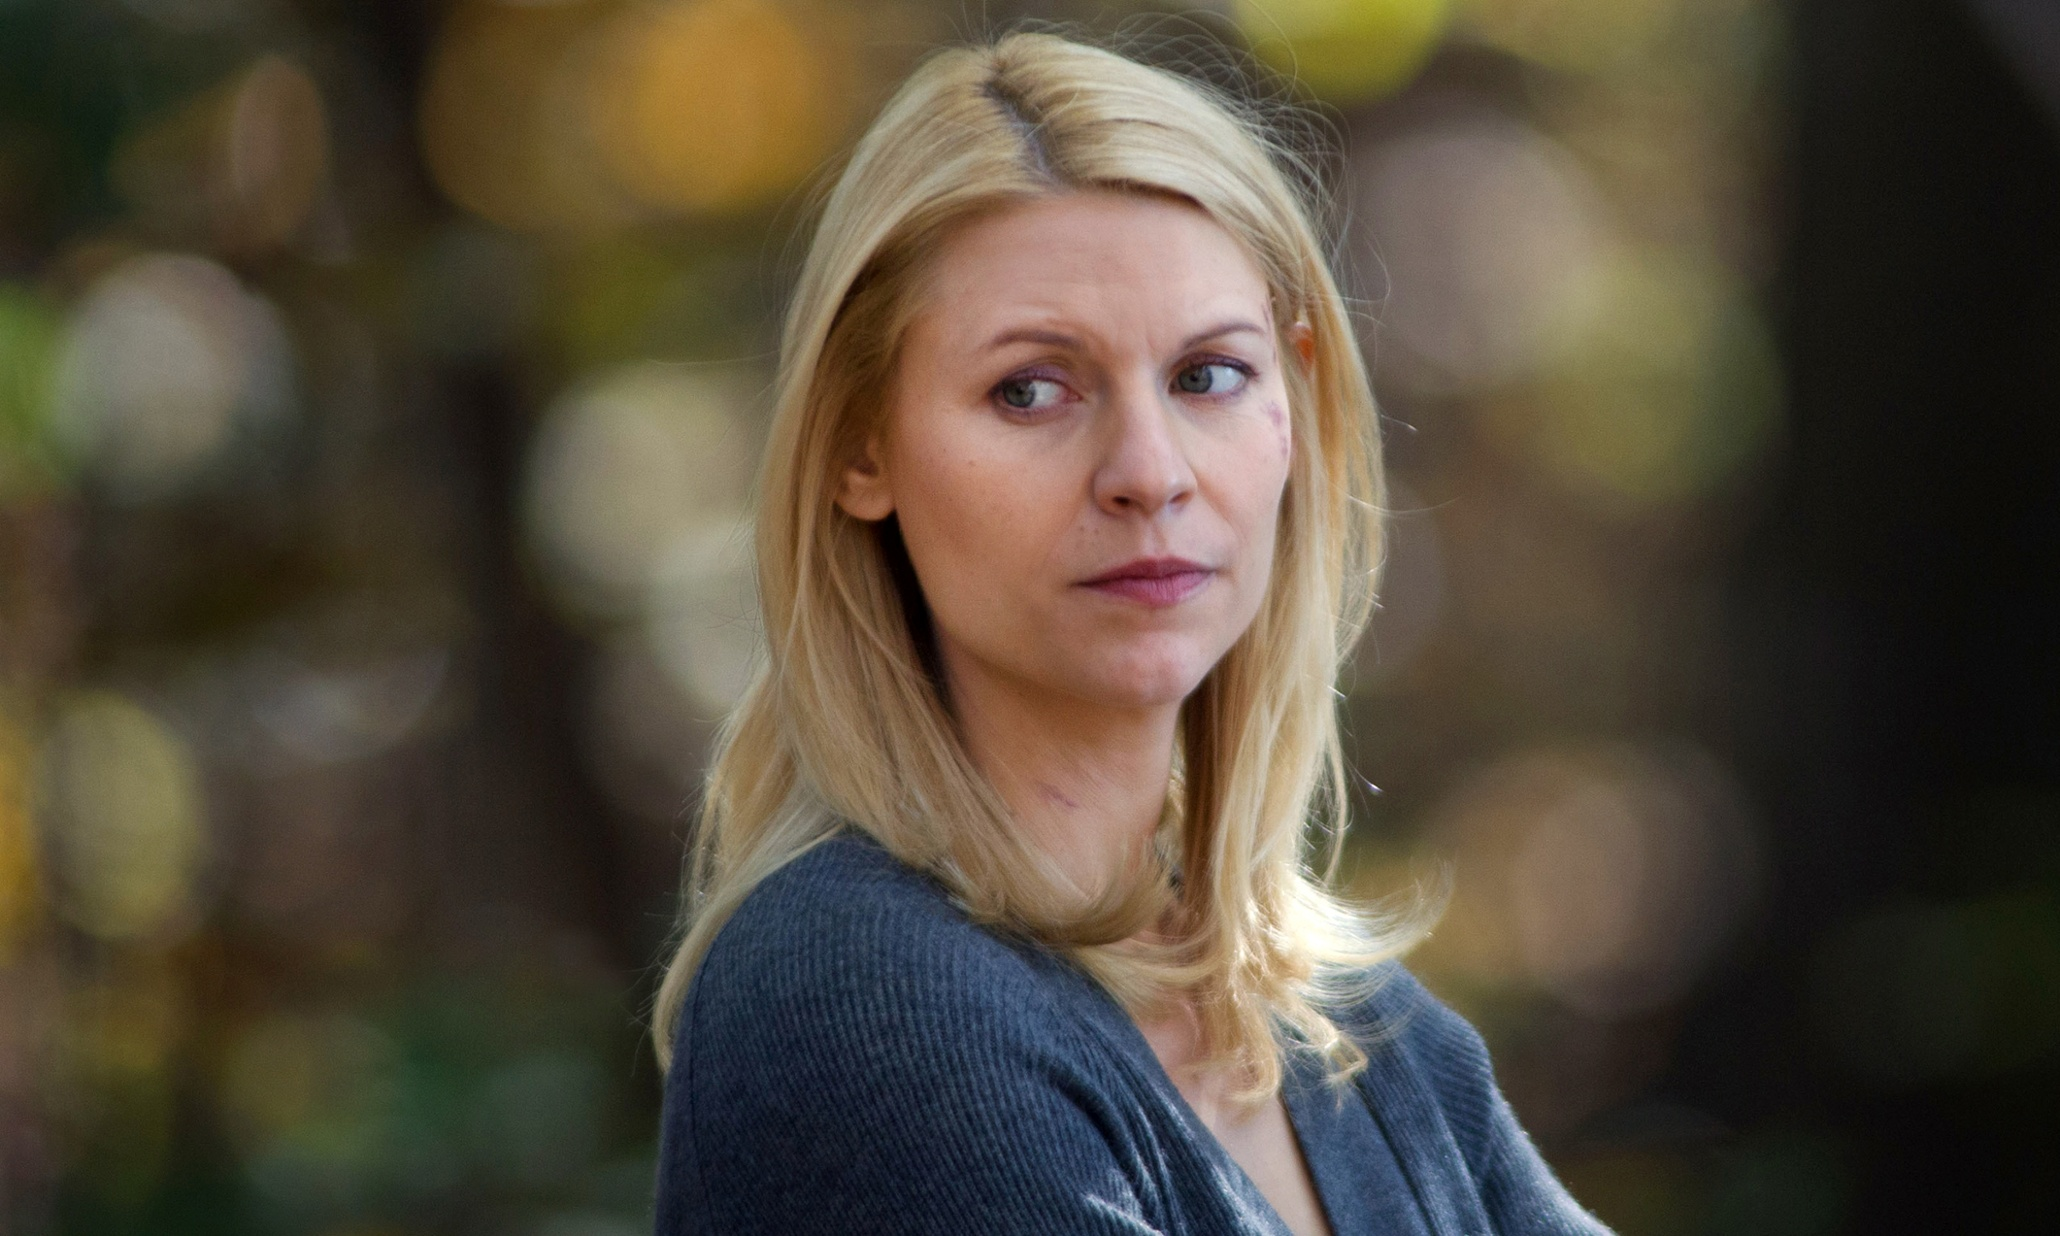 Claire Danes just said the thing we all needed to hear about body image